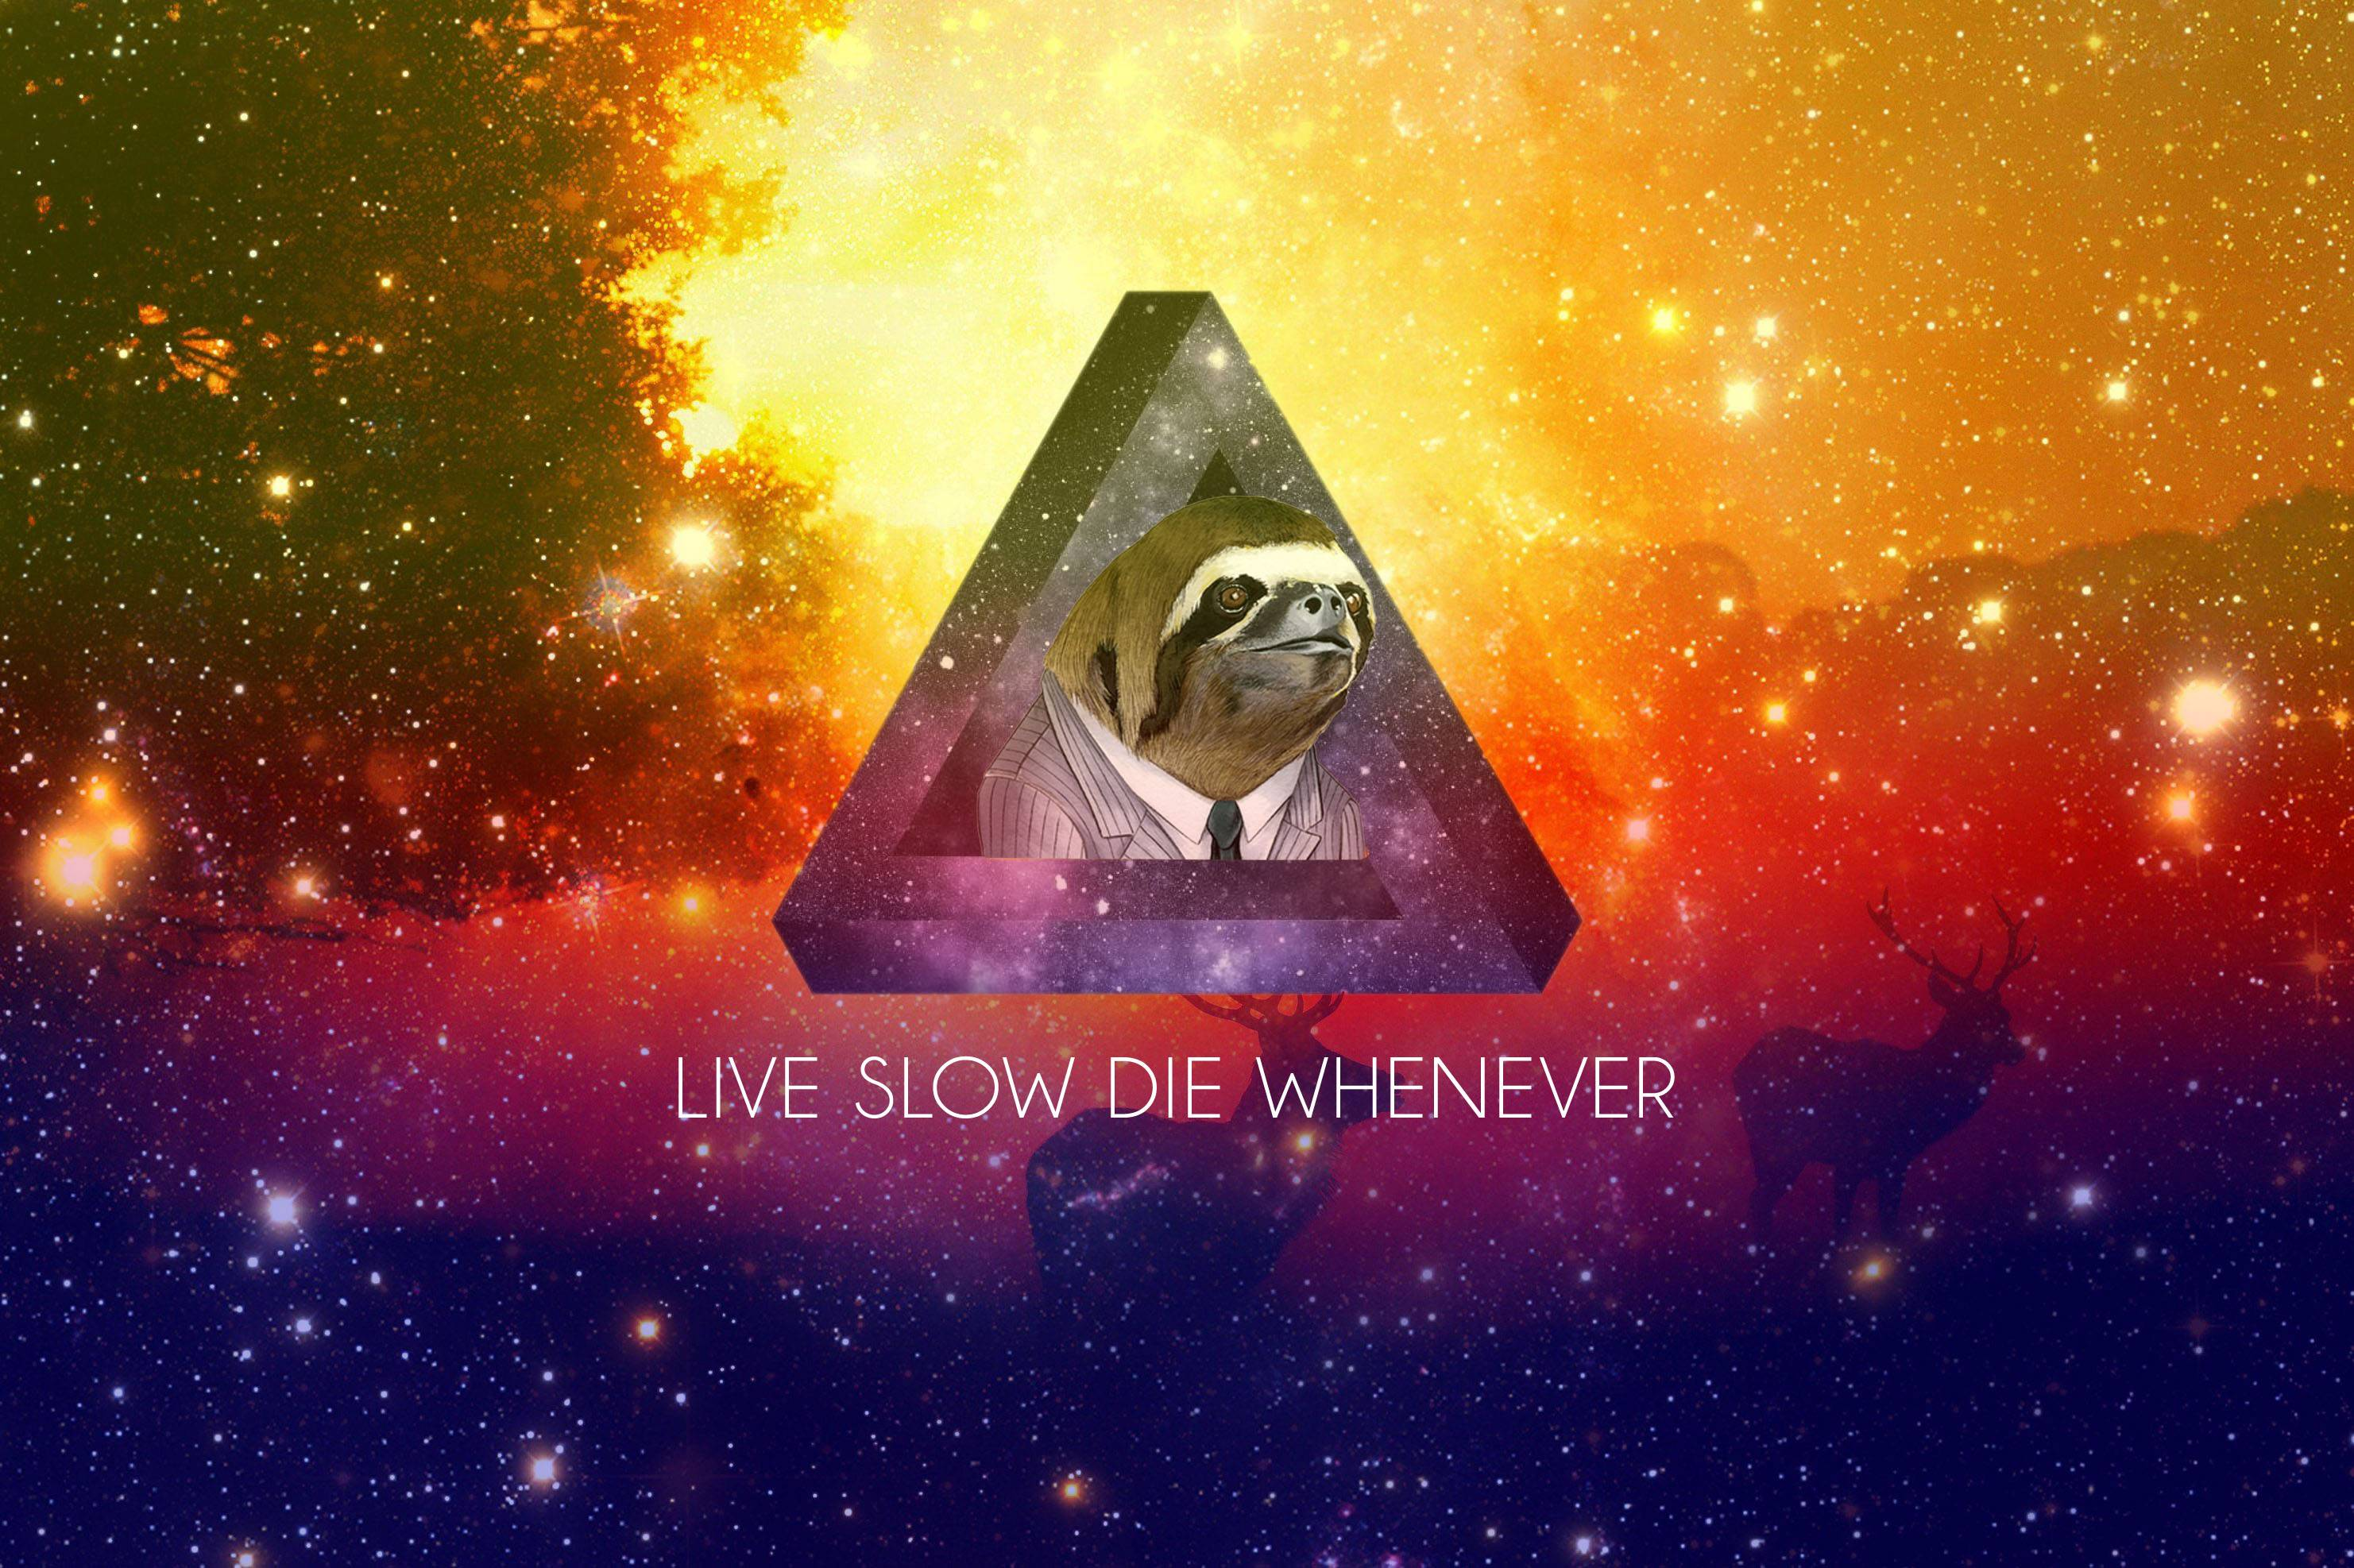 Made a wallpaper out of Nap all day sloth wallpapers 2963x1974